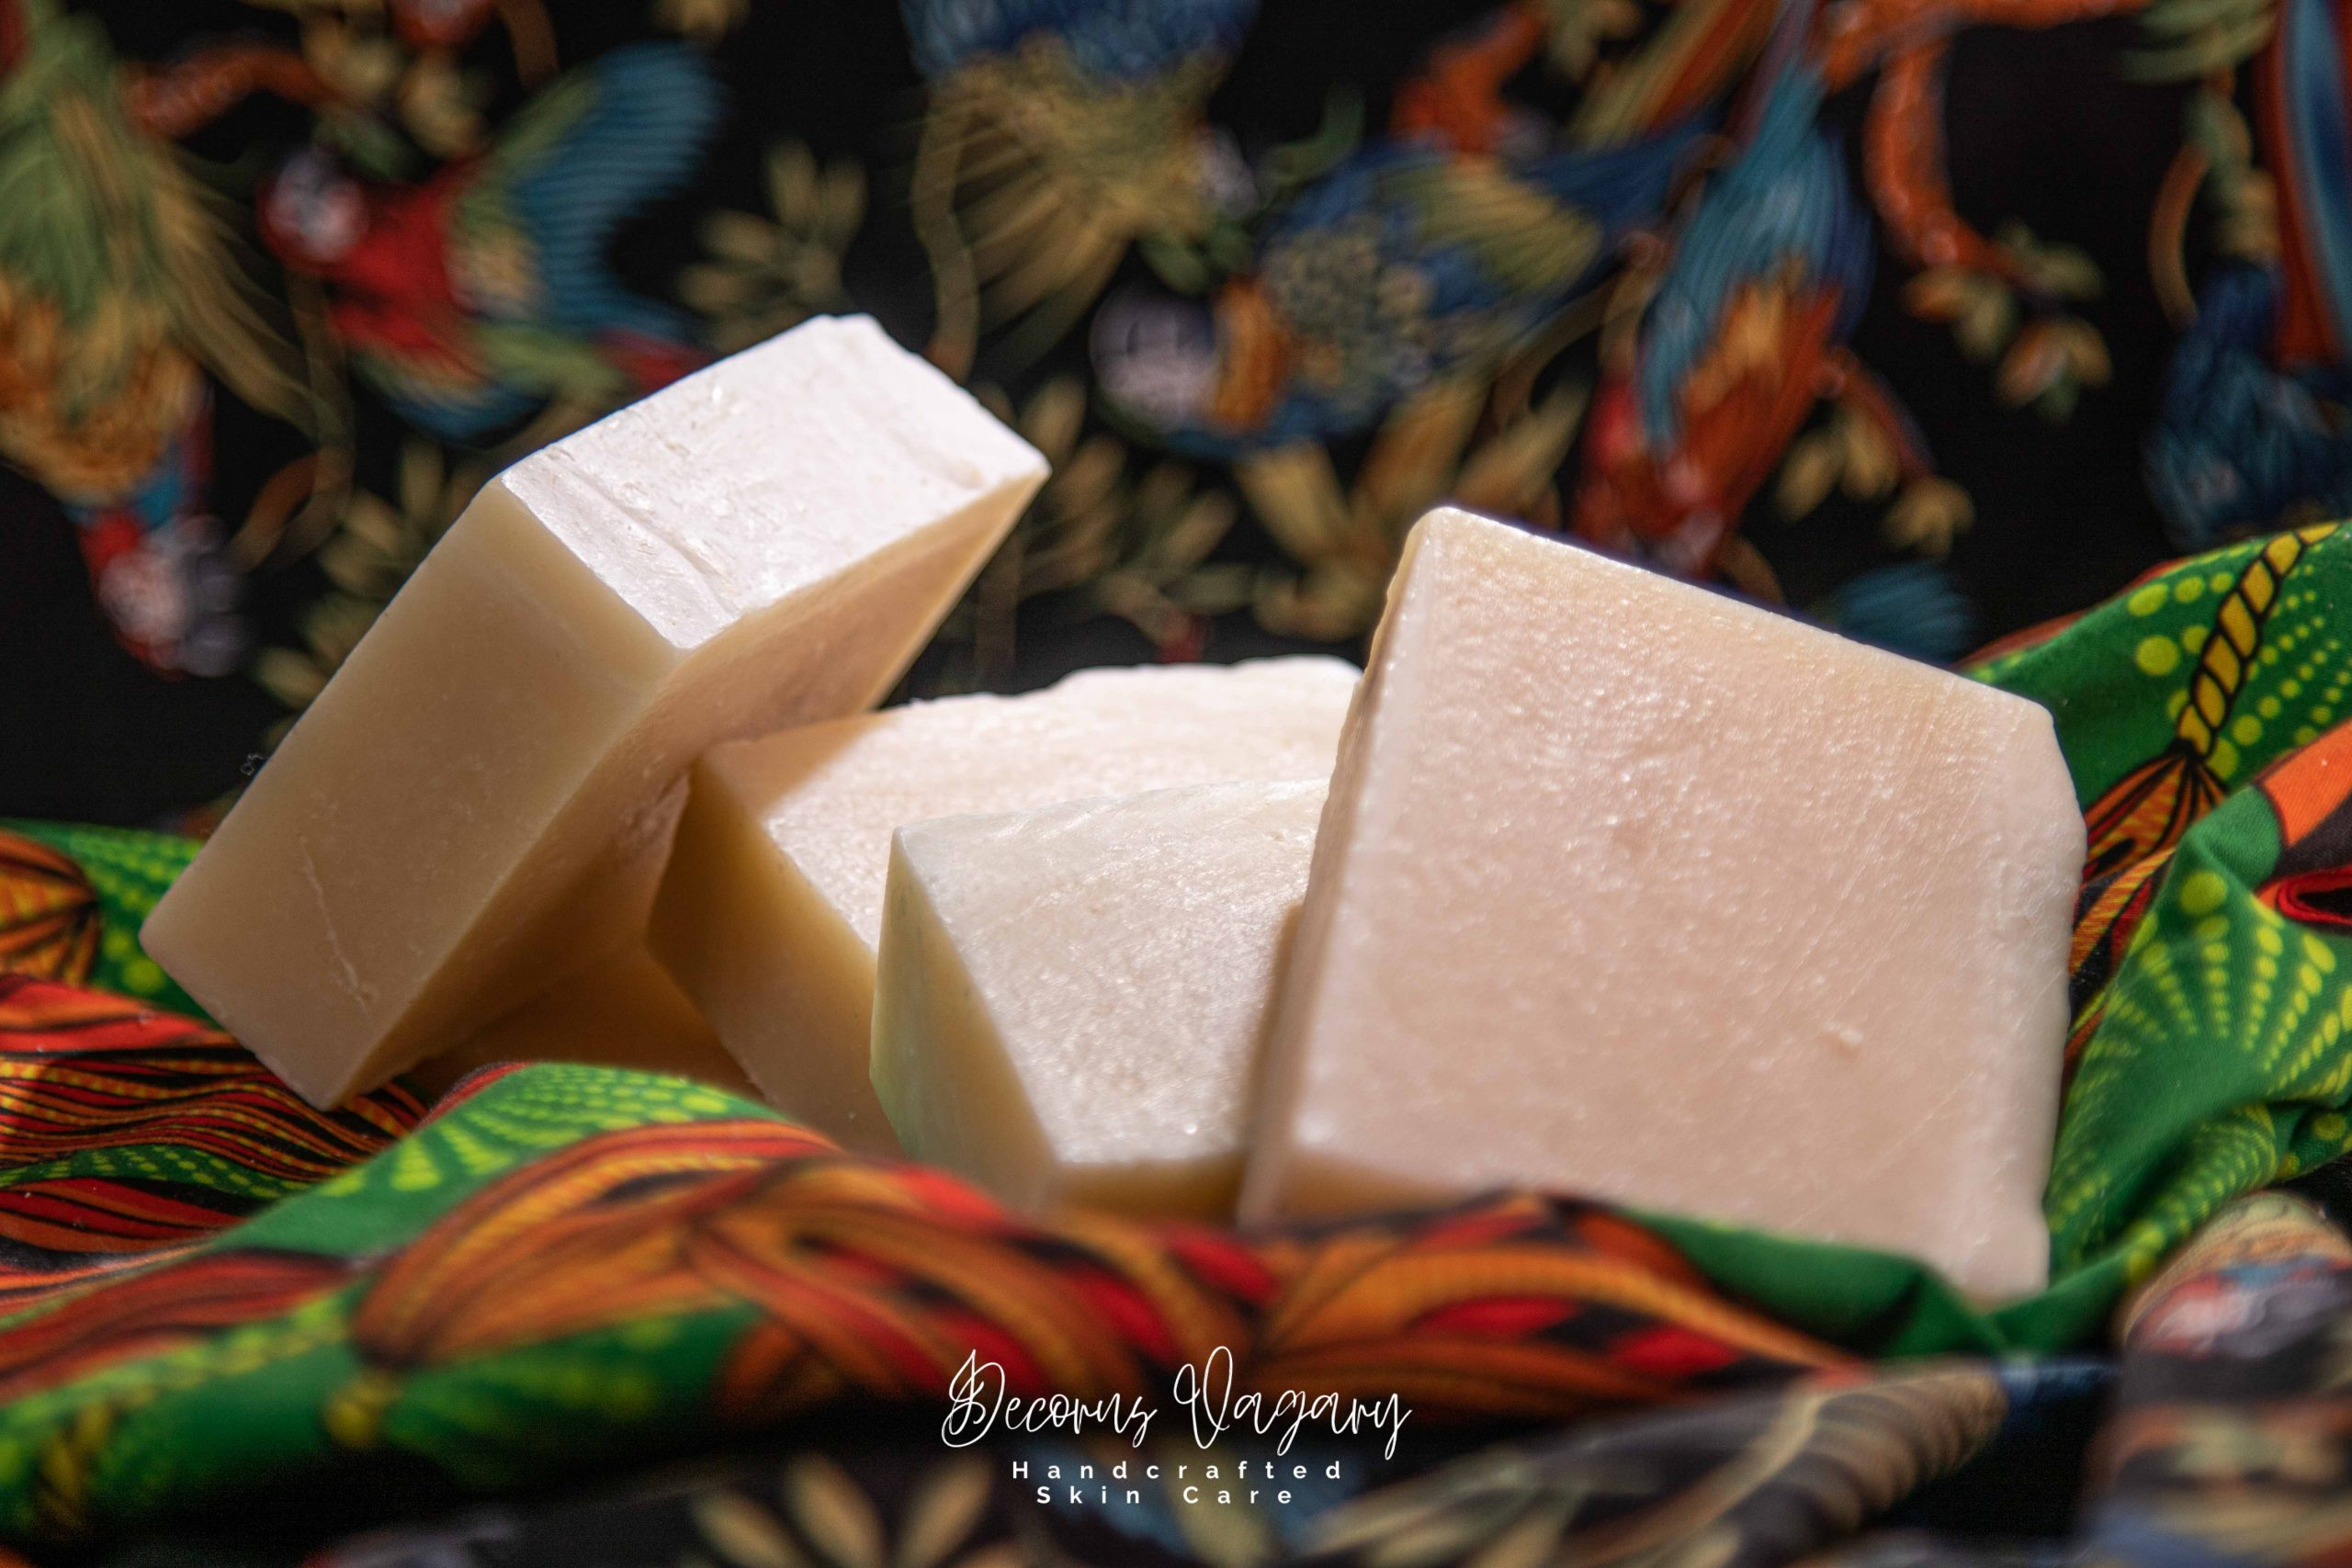 Decorus vagary garri soap on African print.